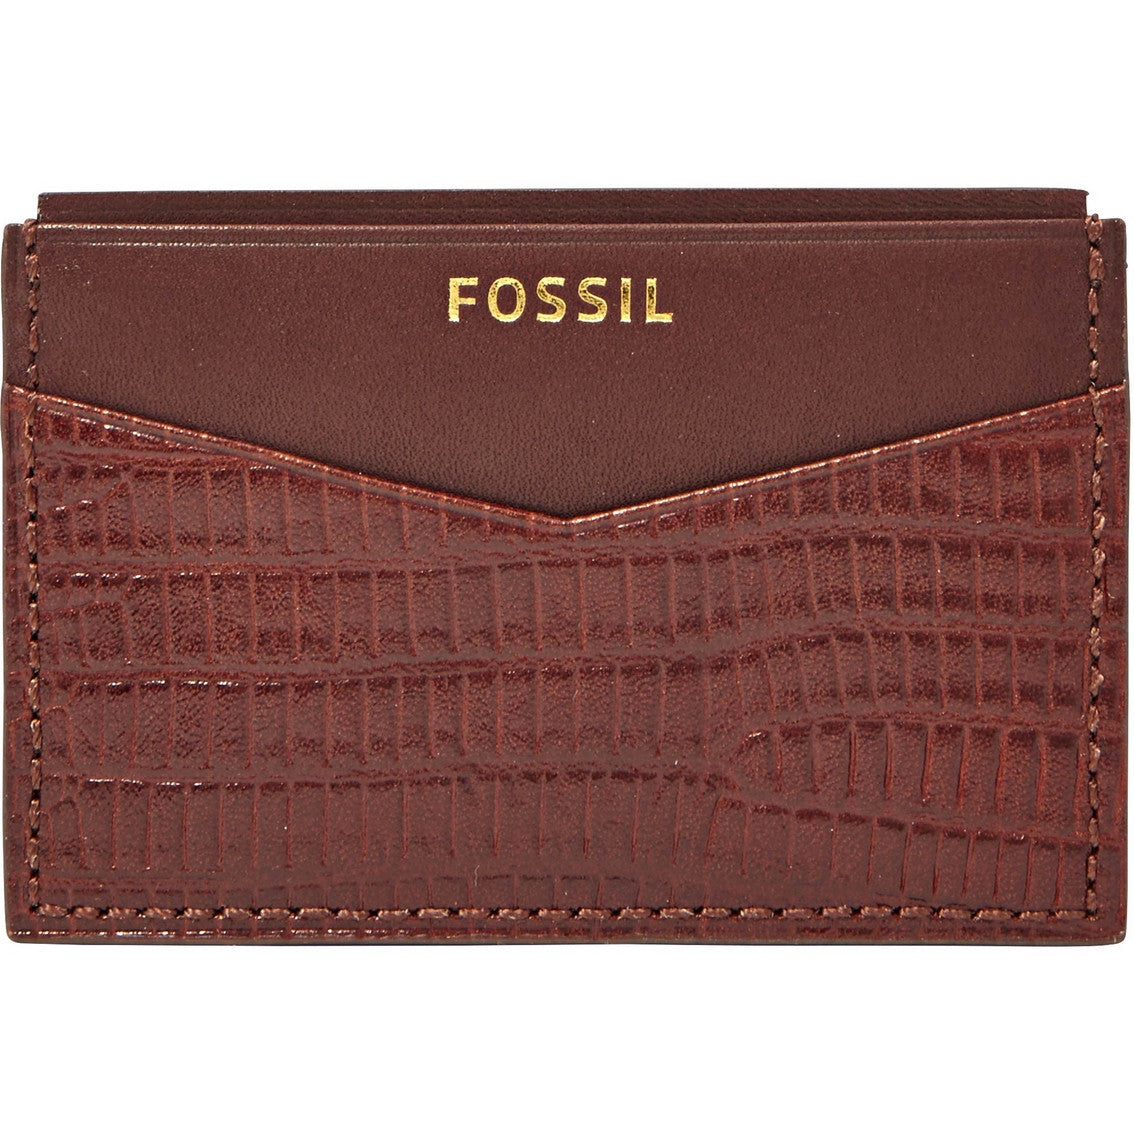 Fossil Men's Leather Francis Front Pocket Card Case Wallet